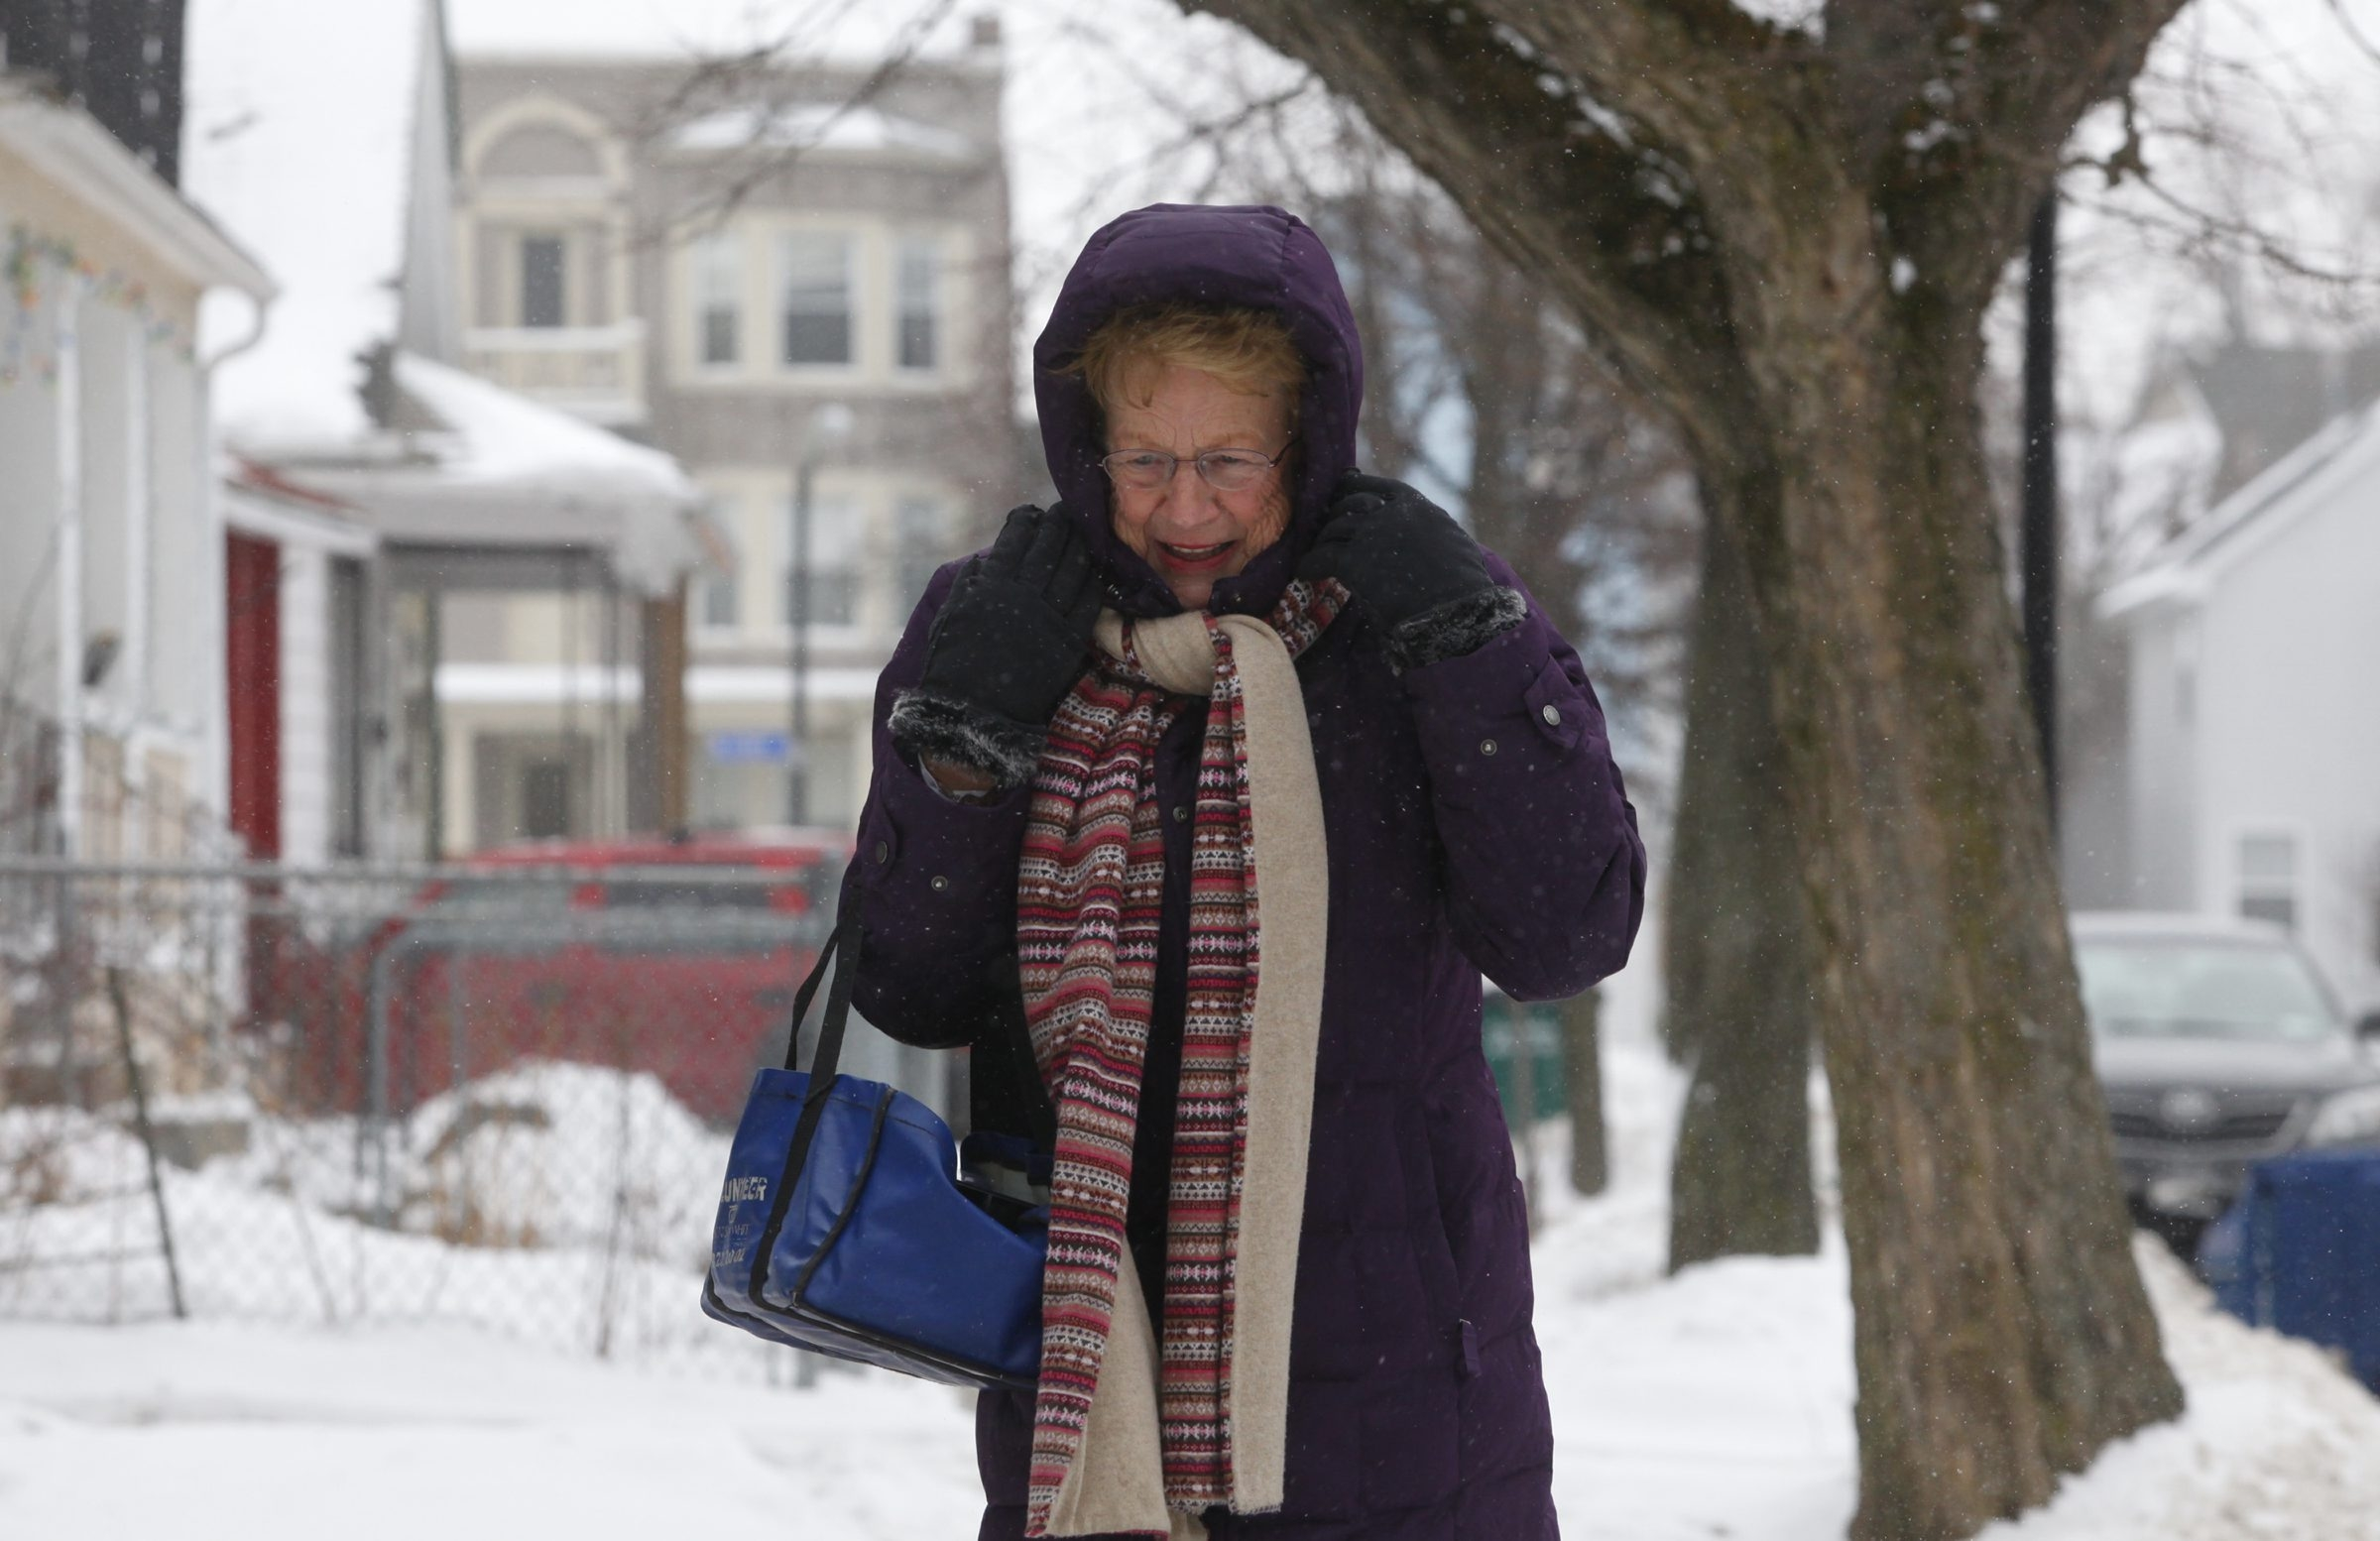 Meals on Wheels volunteer Judy Marine, 75, braves Wednesday's arctic conditions to ensure that West Side residents' needs are met.